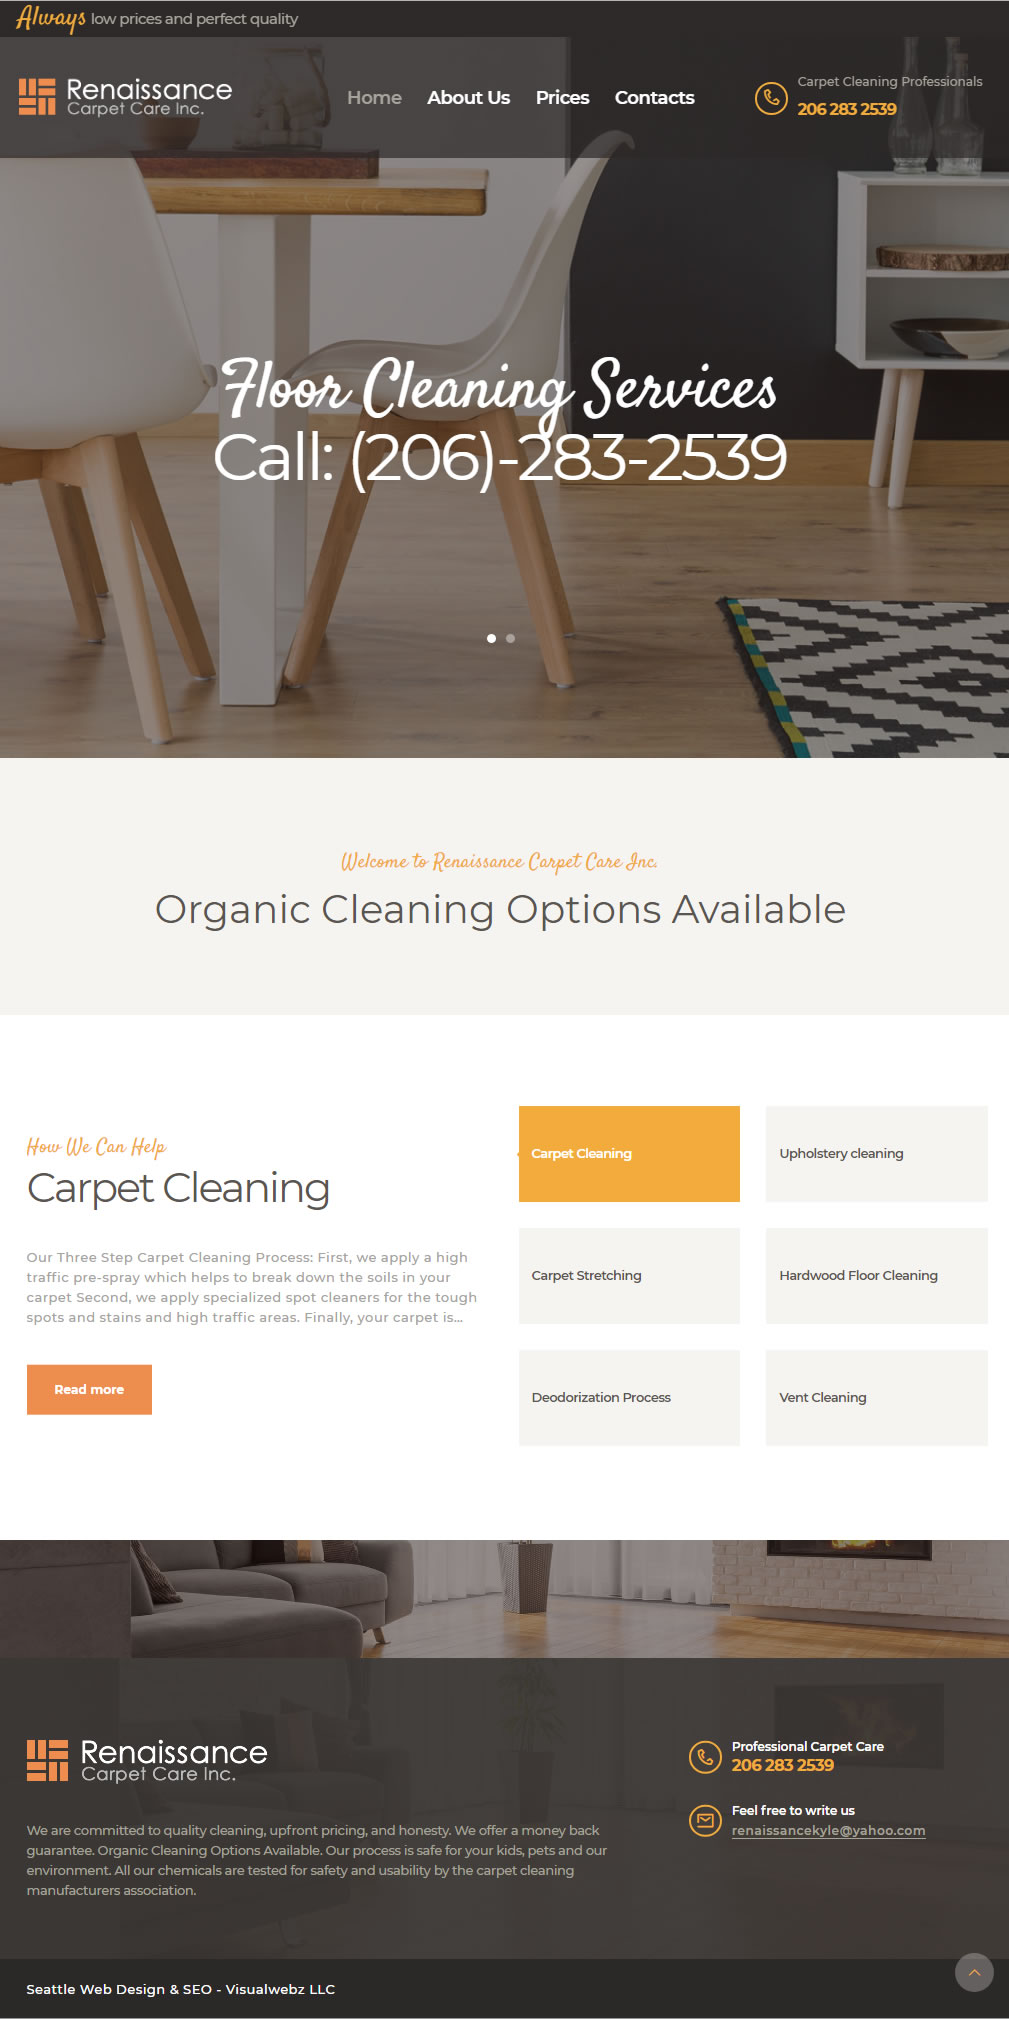 Seattle Carpet Cleaning Web Design -SEO - Local - Visualwebz com